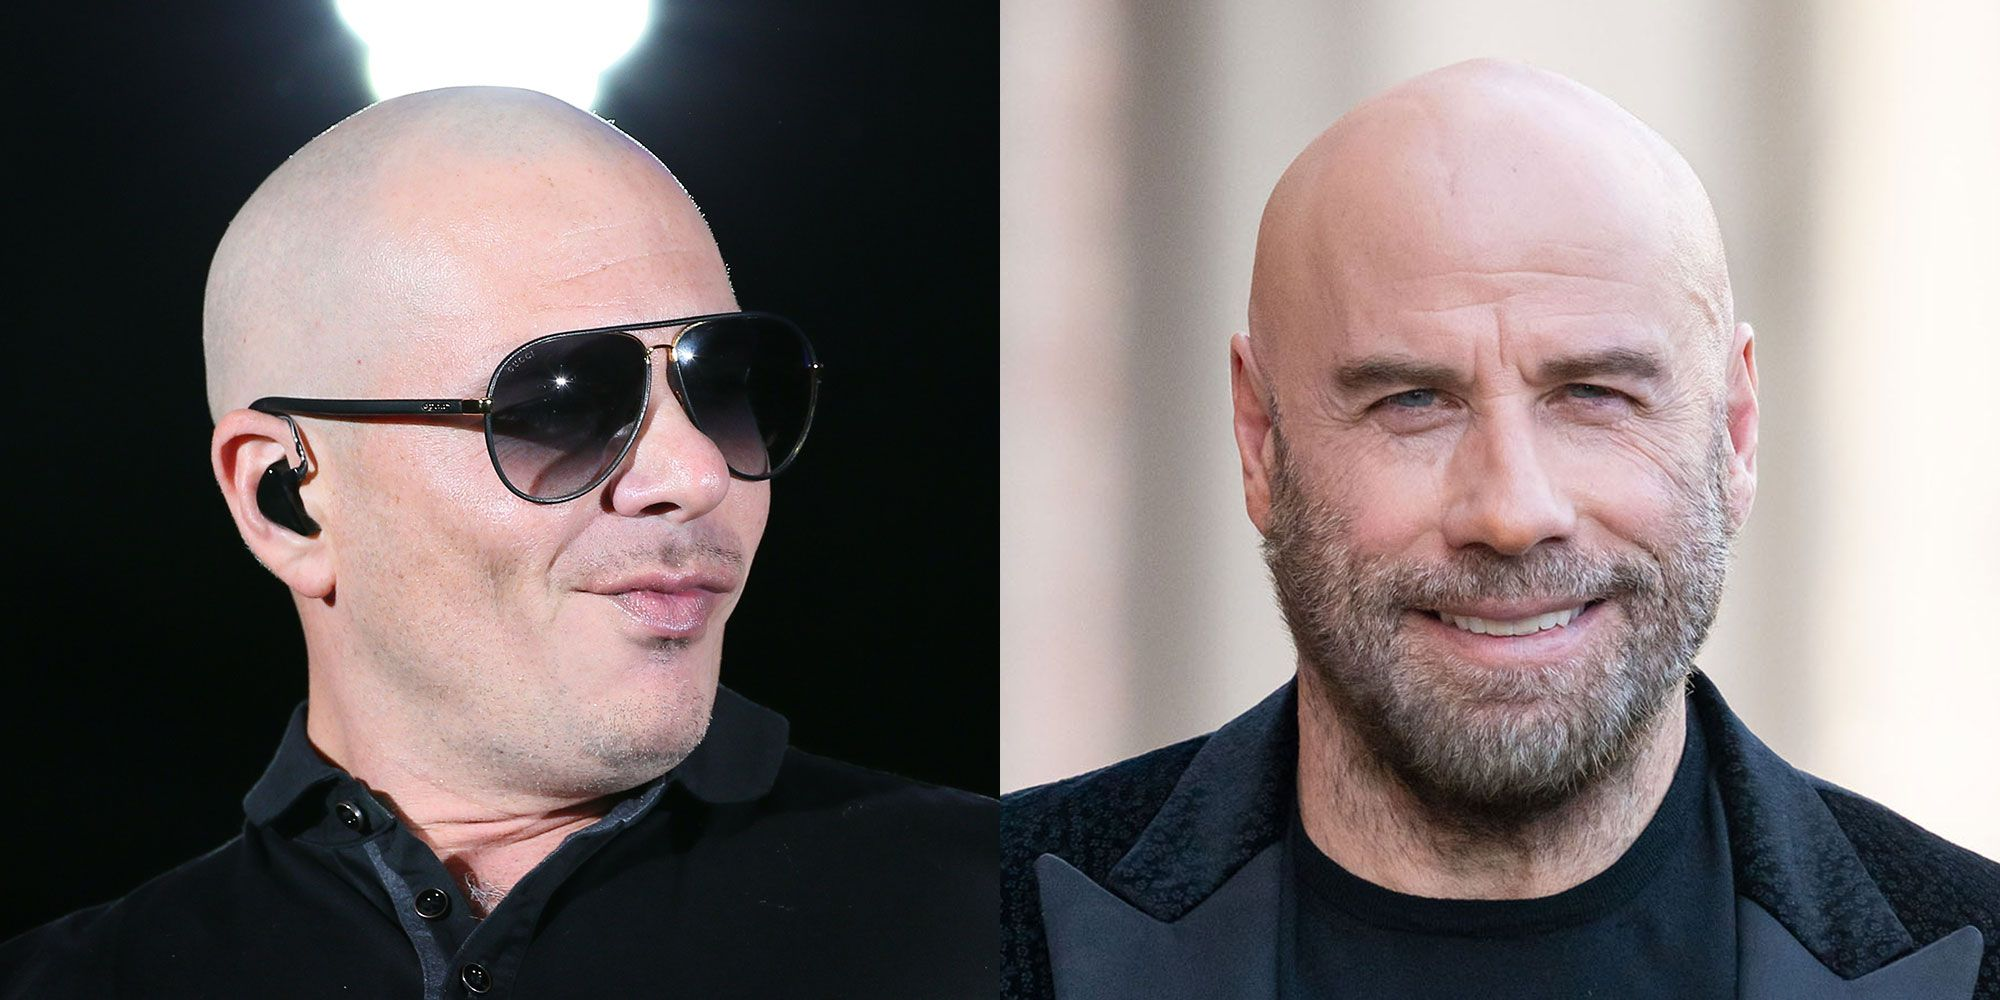 The actor and the singer are friends, and Mr. Worldwide encouraged the move.